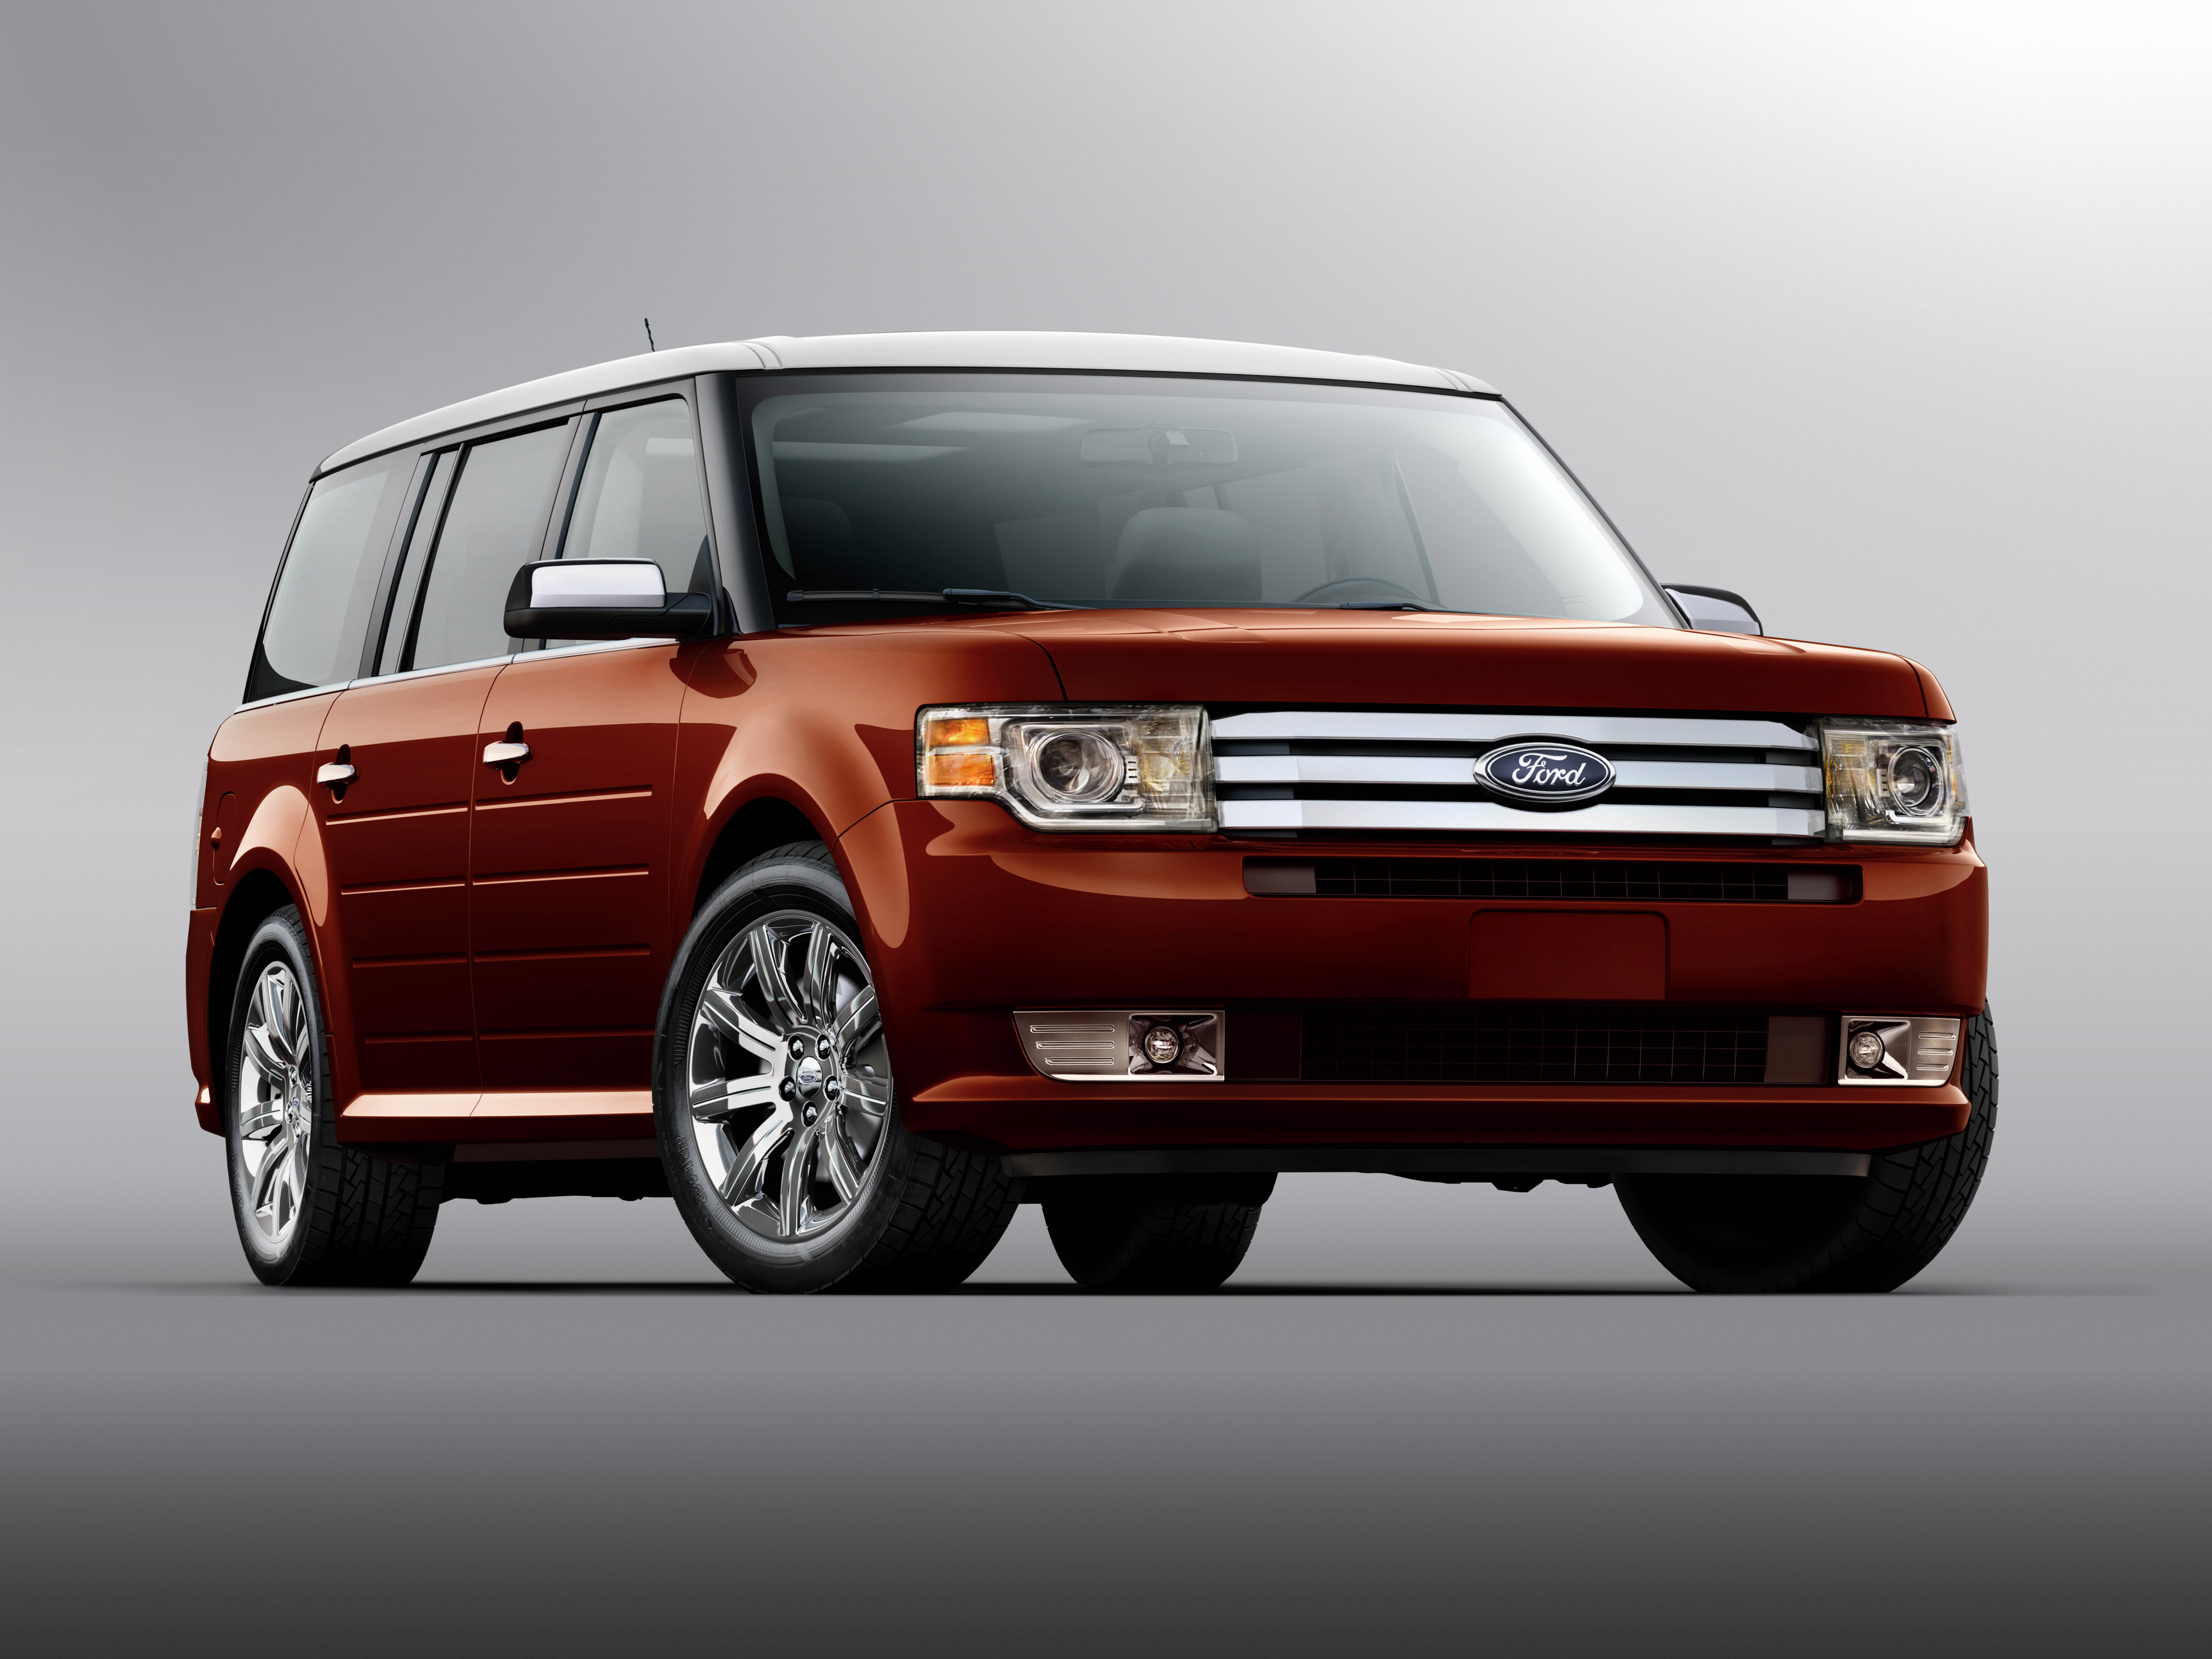 Pre-Owned Ford Cars For Sale In Snohomish County